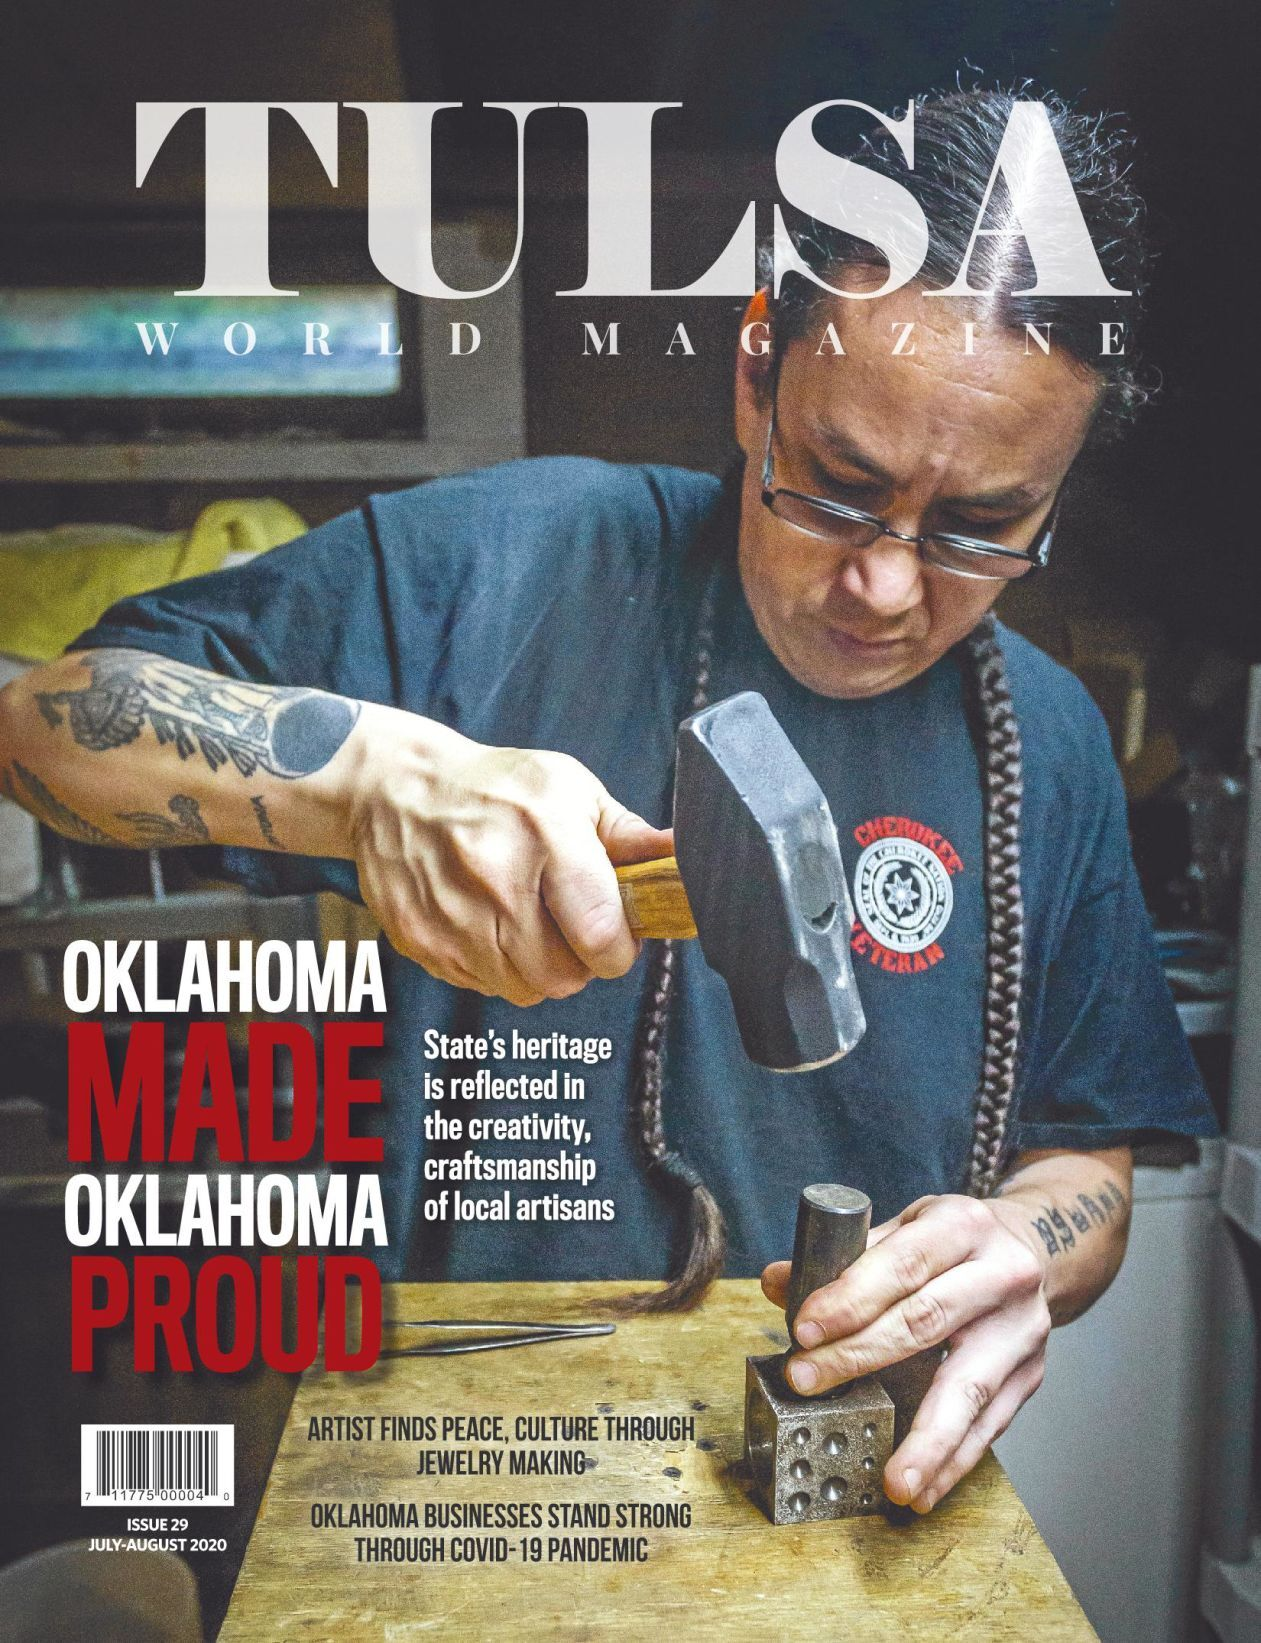 Buy the current Tulsa World Magazine